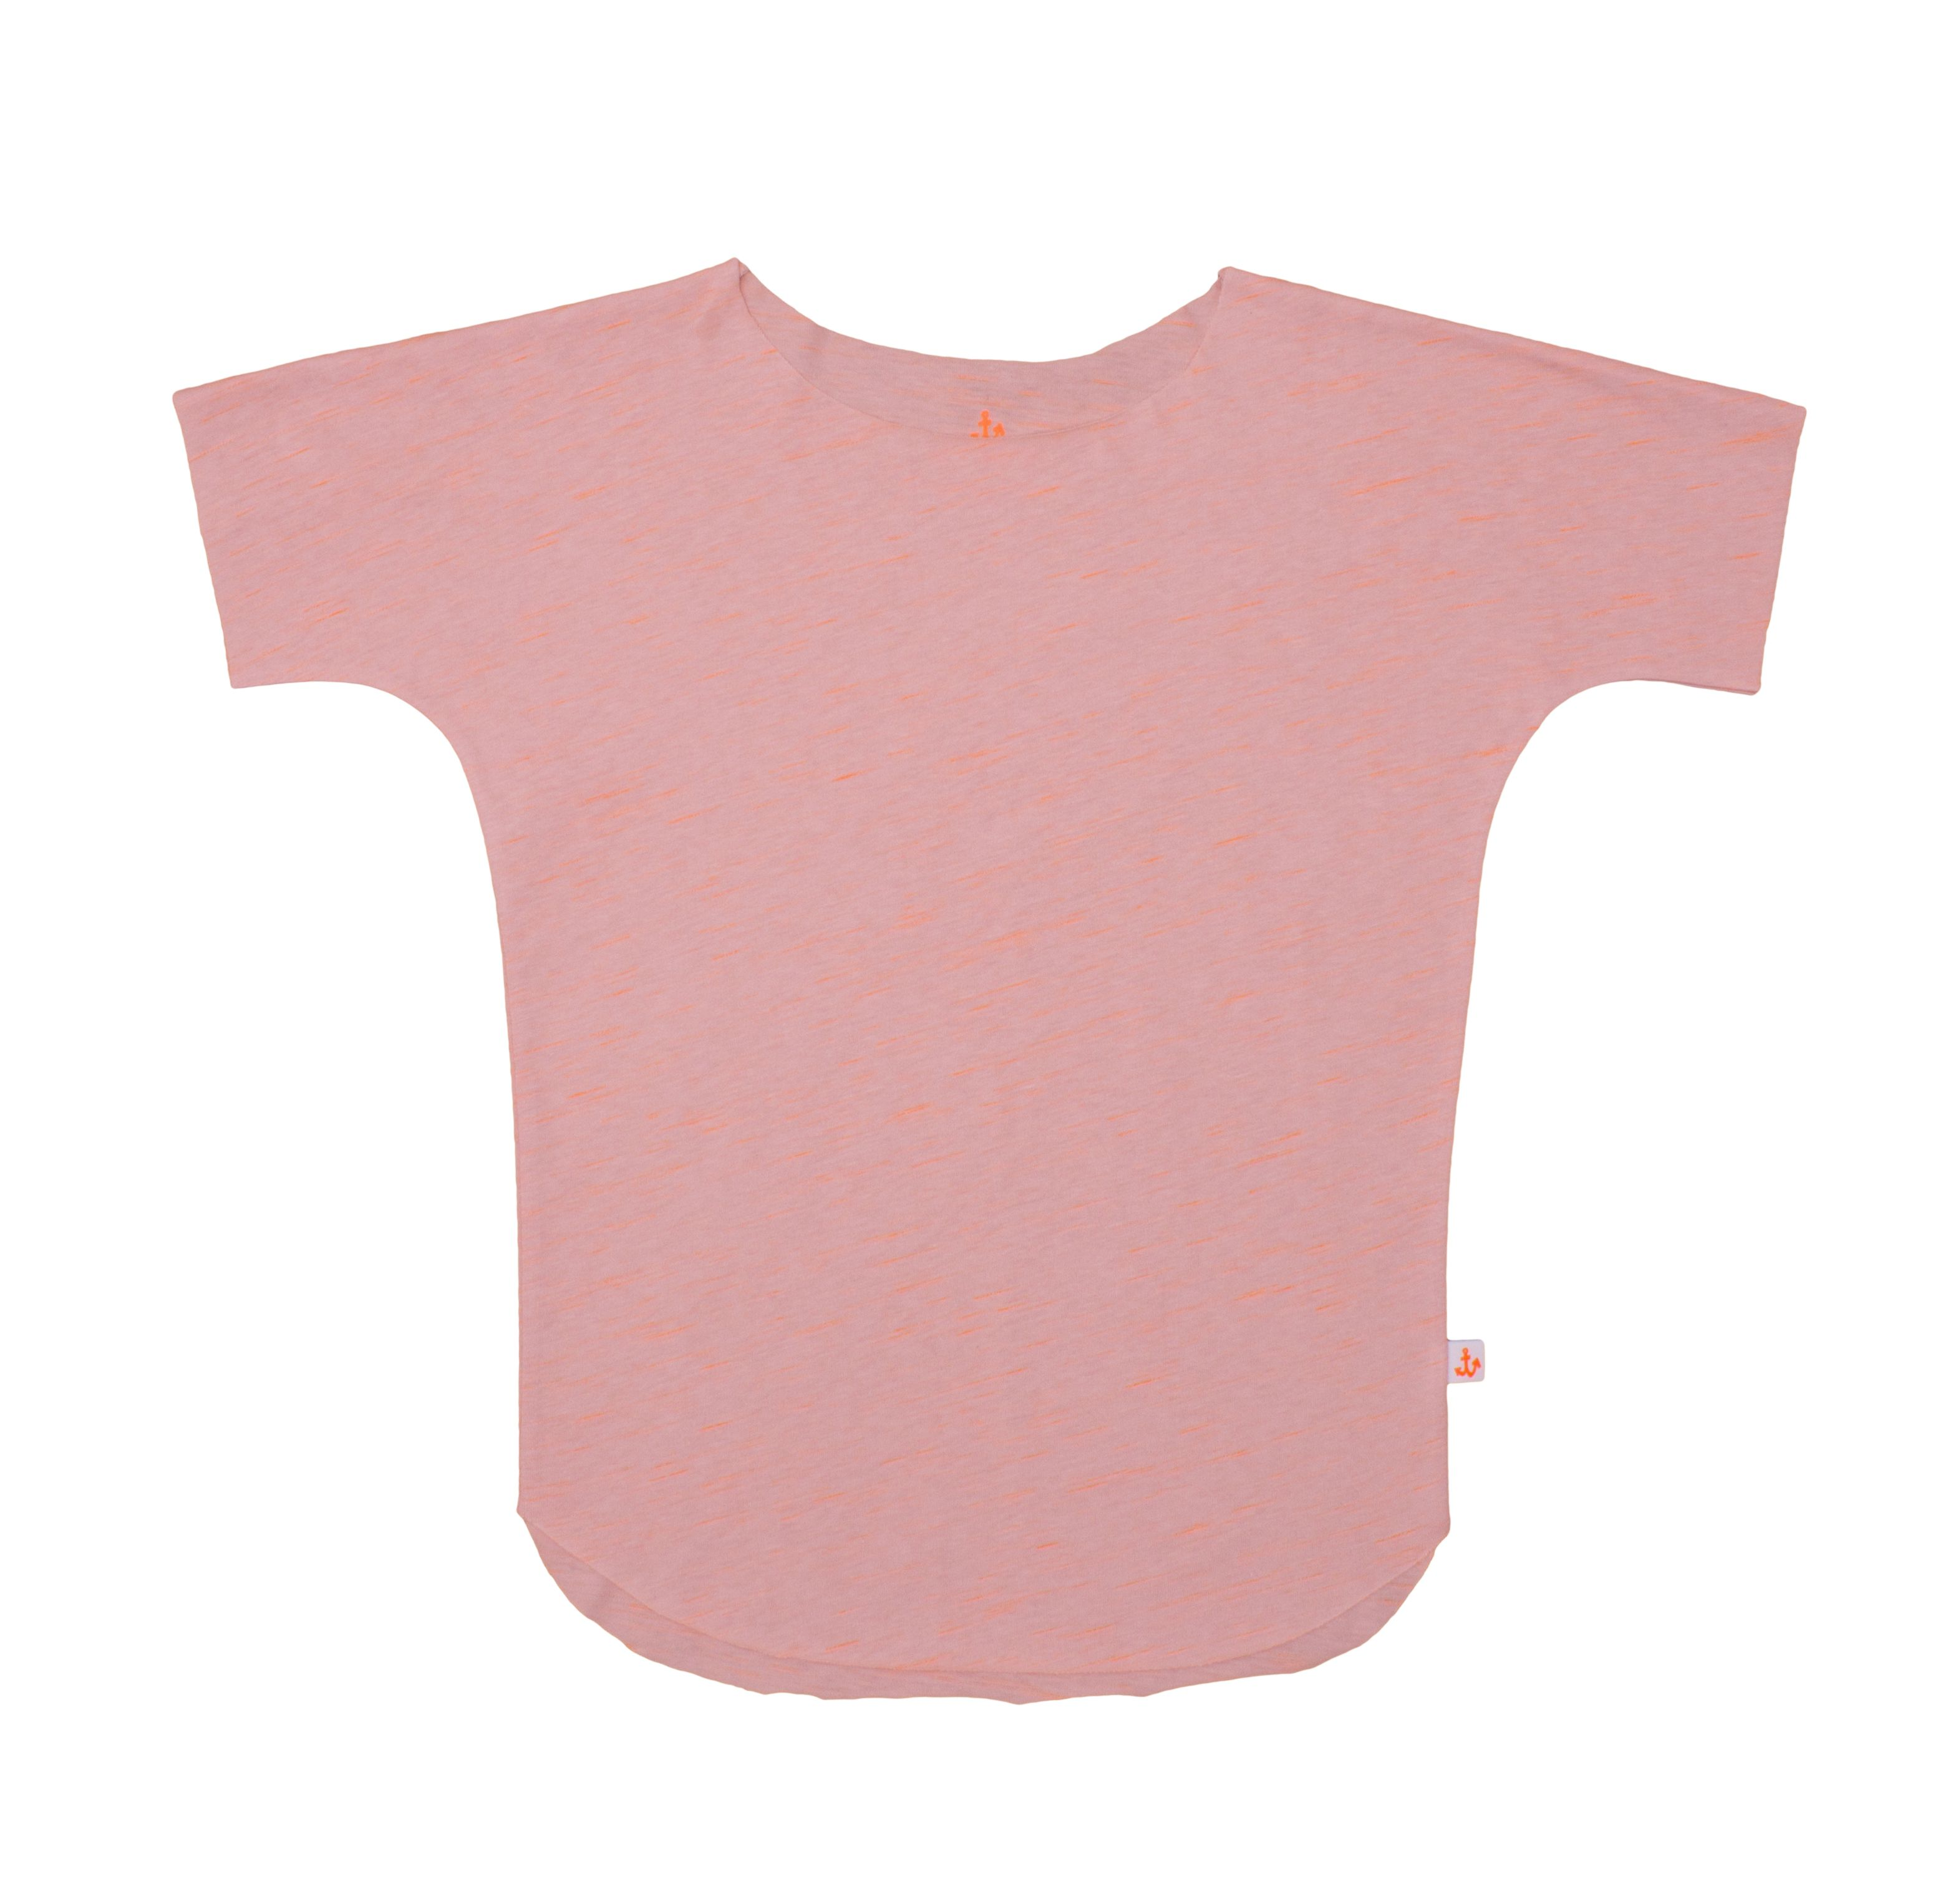 Noé & Zoë SS 16 - Girls tee in peach http://www.noe-zoe.com/Collections/SS-16/